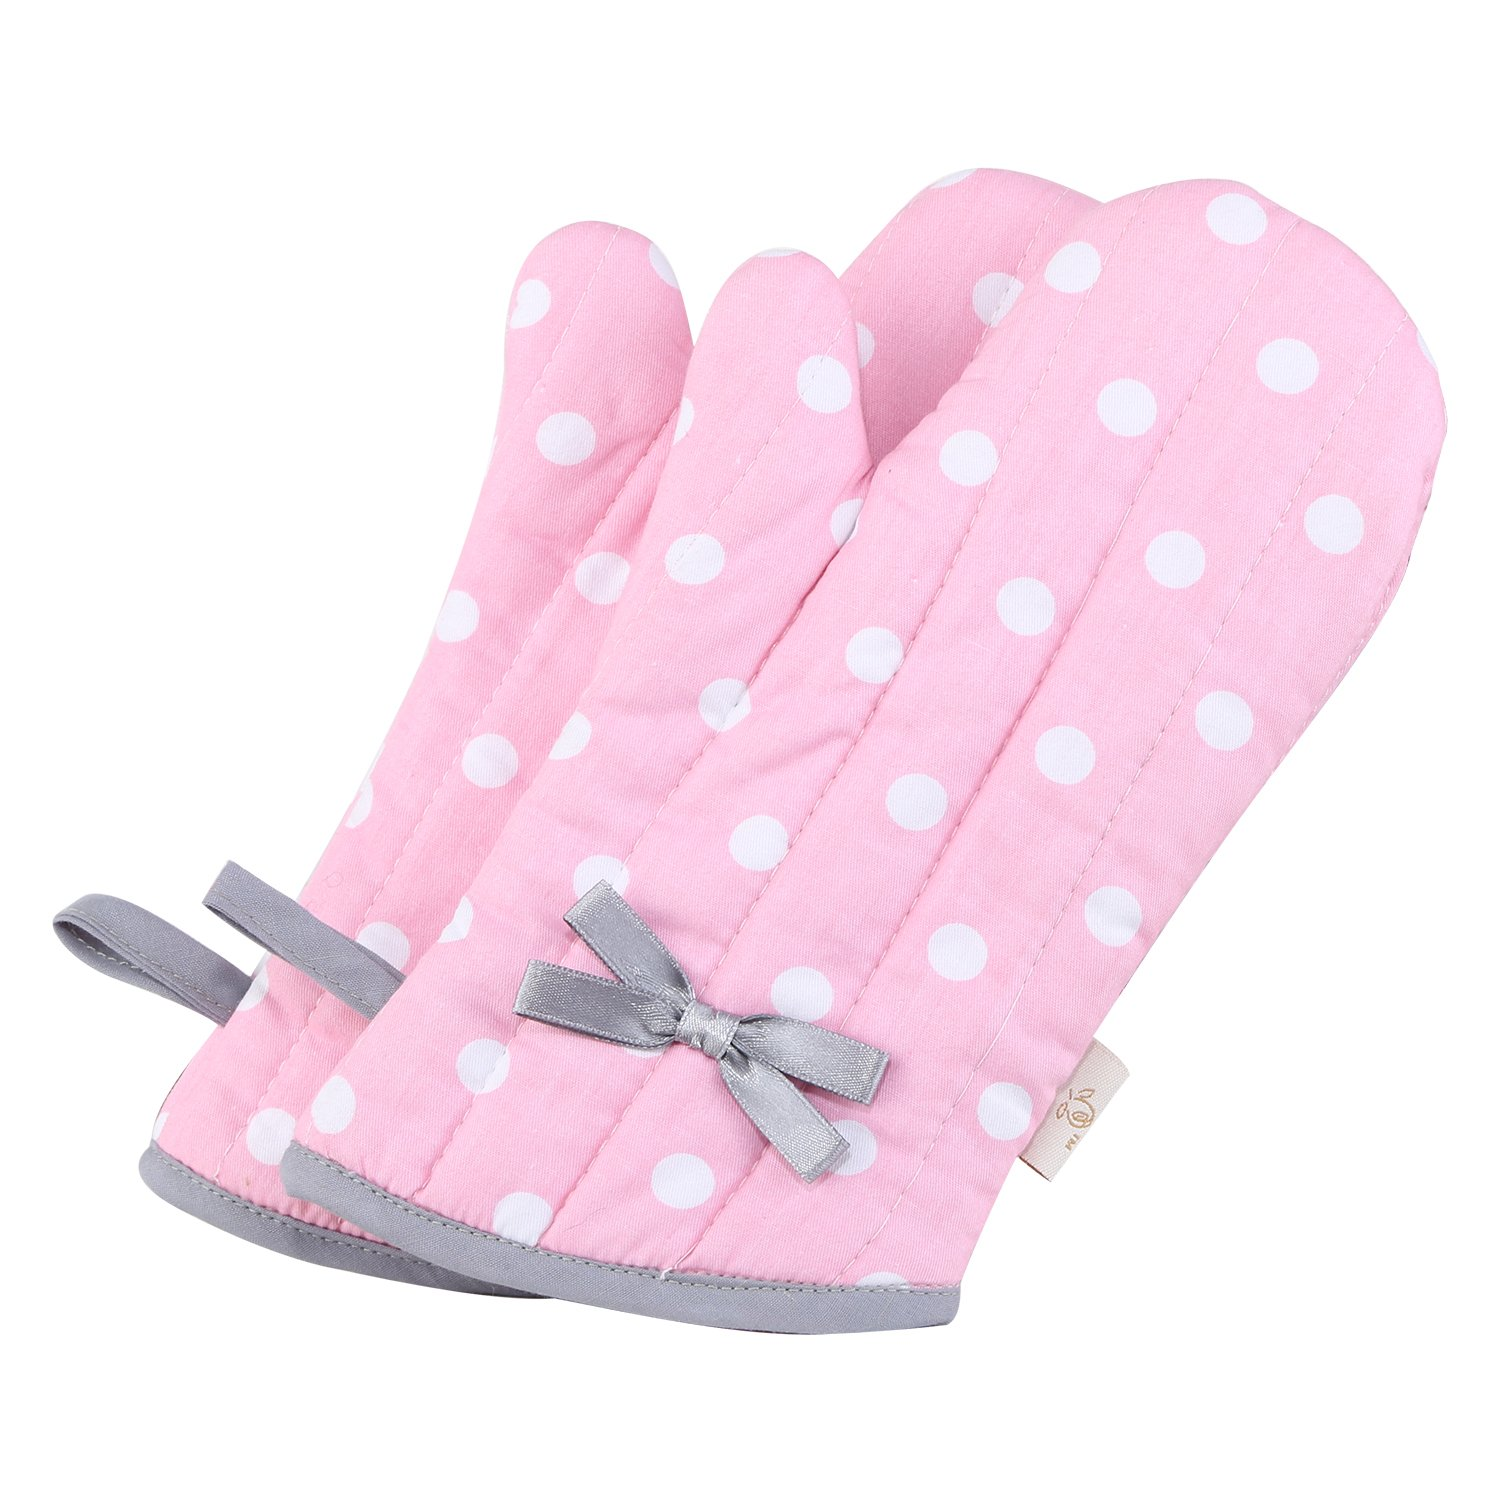 Neoviva Cotton Twill Quilted Oven Mitt for Child, Set of 2, Polka Dots Pink